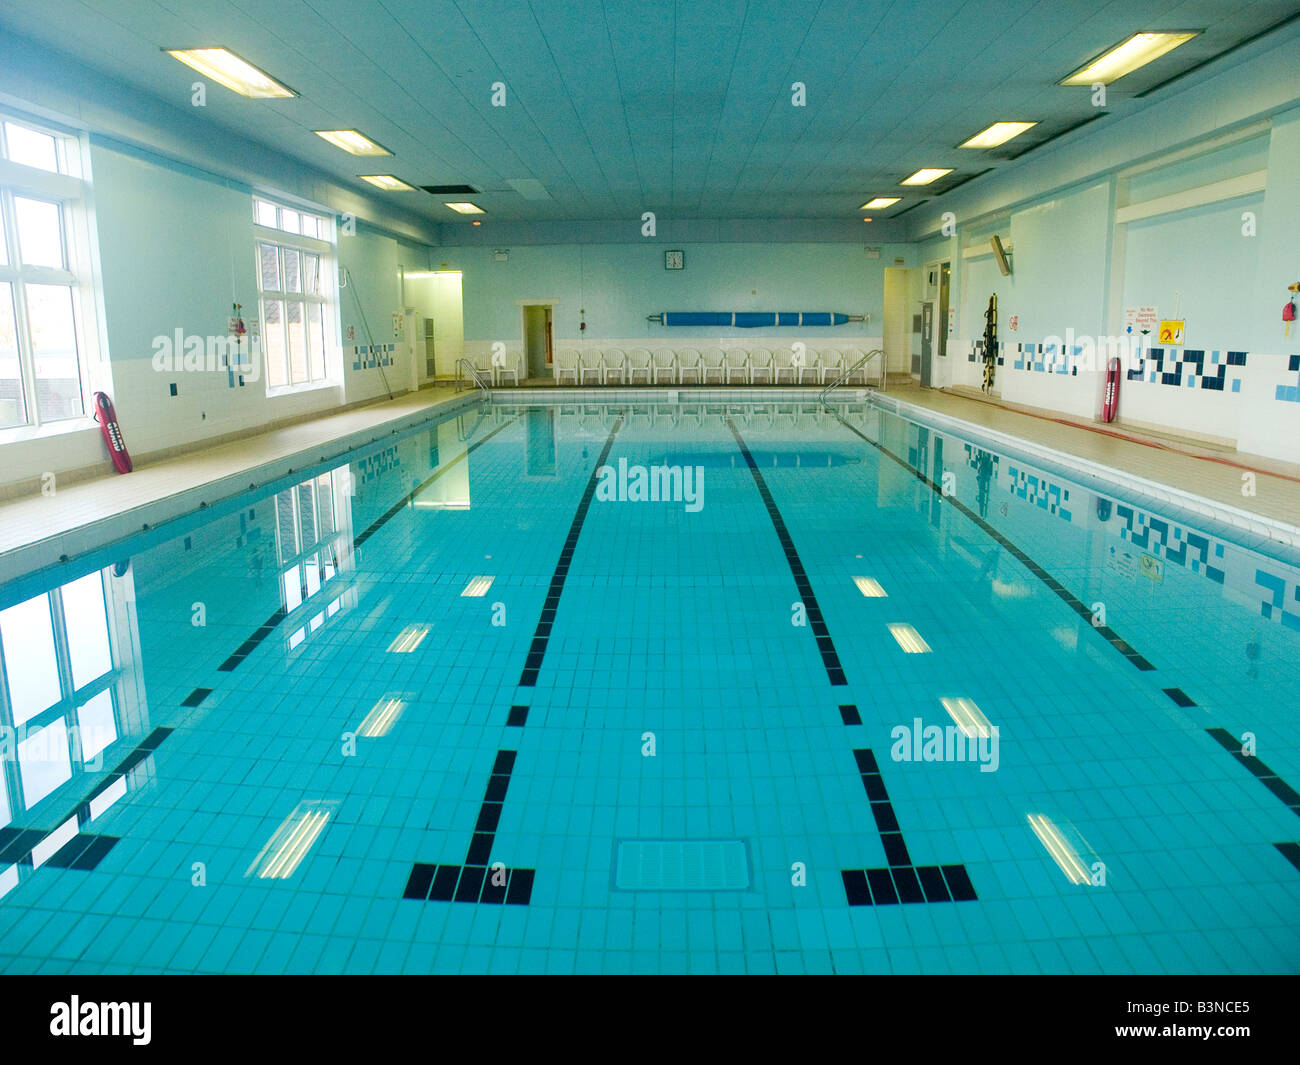 A public swimming pool at a local council run leisure centre stock photo royalty free image for Community swimming pools near me